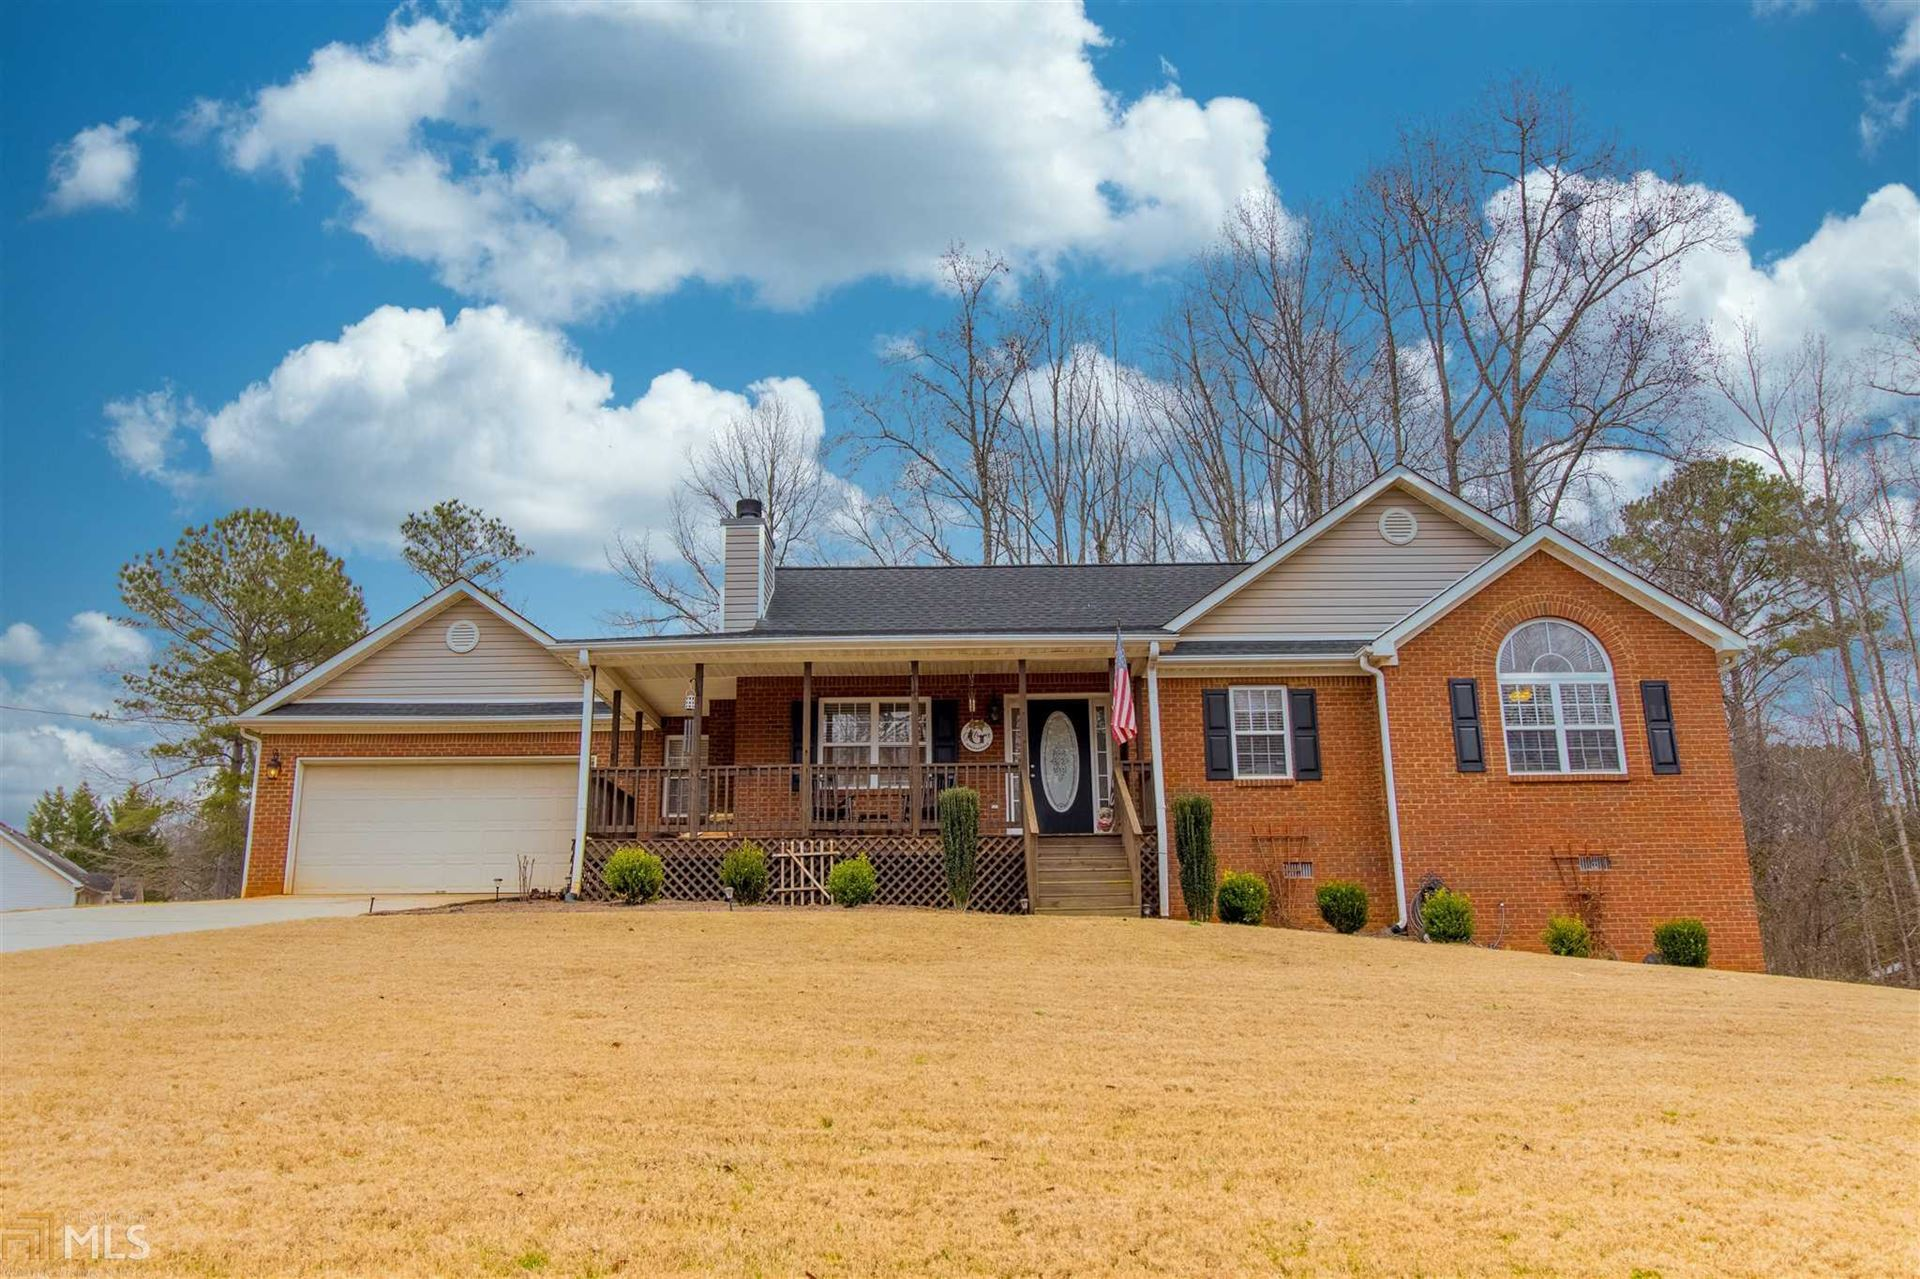 134 Cole walk, McDonough, GA 30252 - #: 8911533